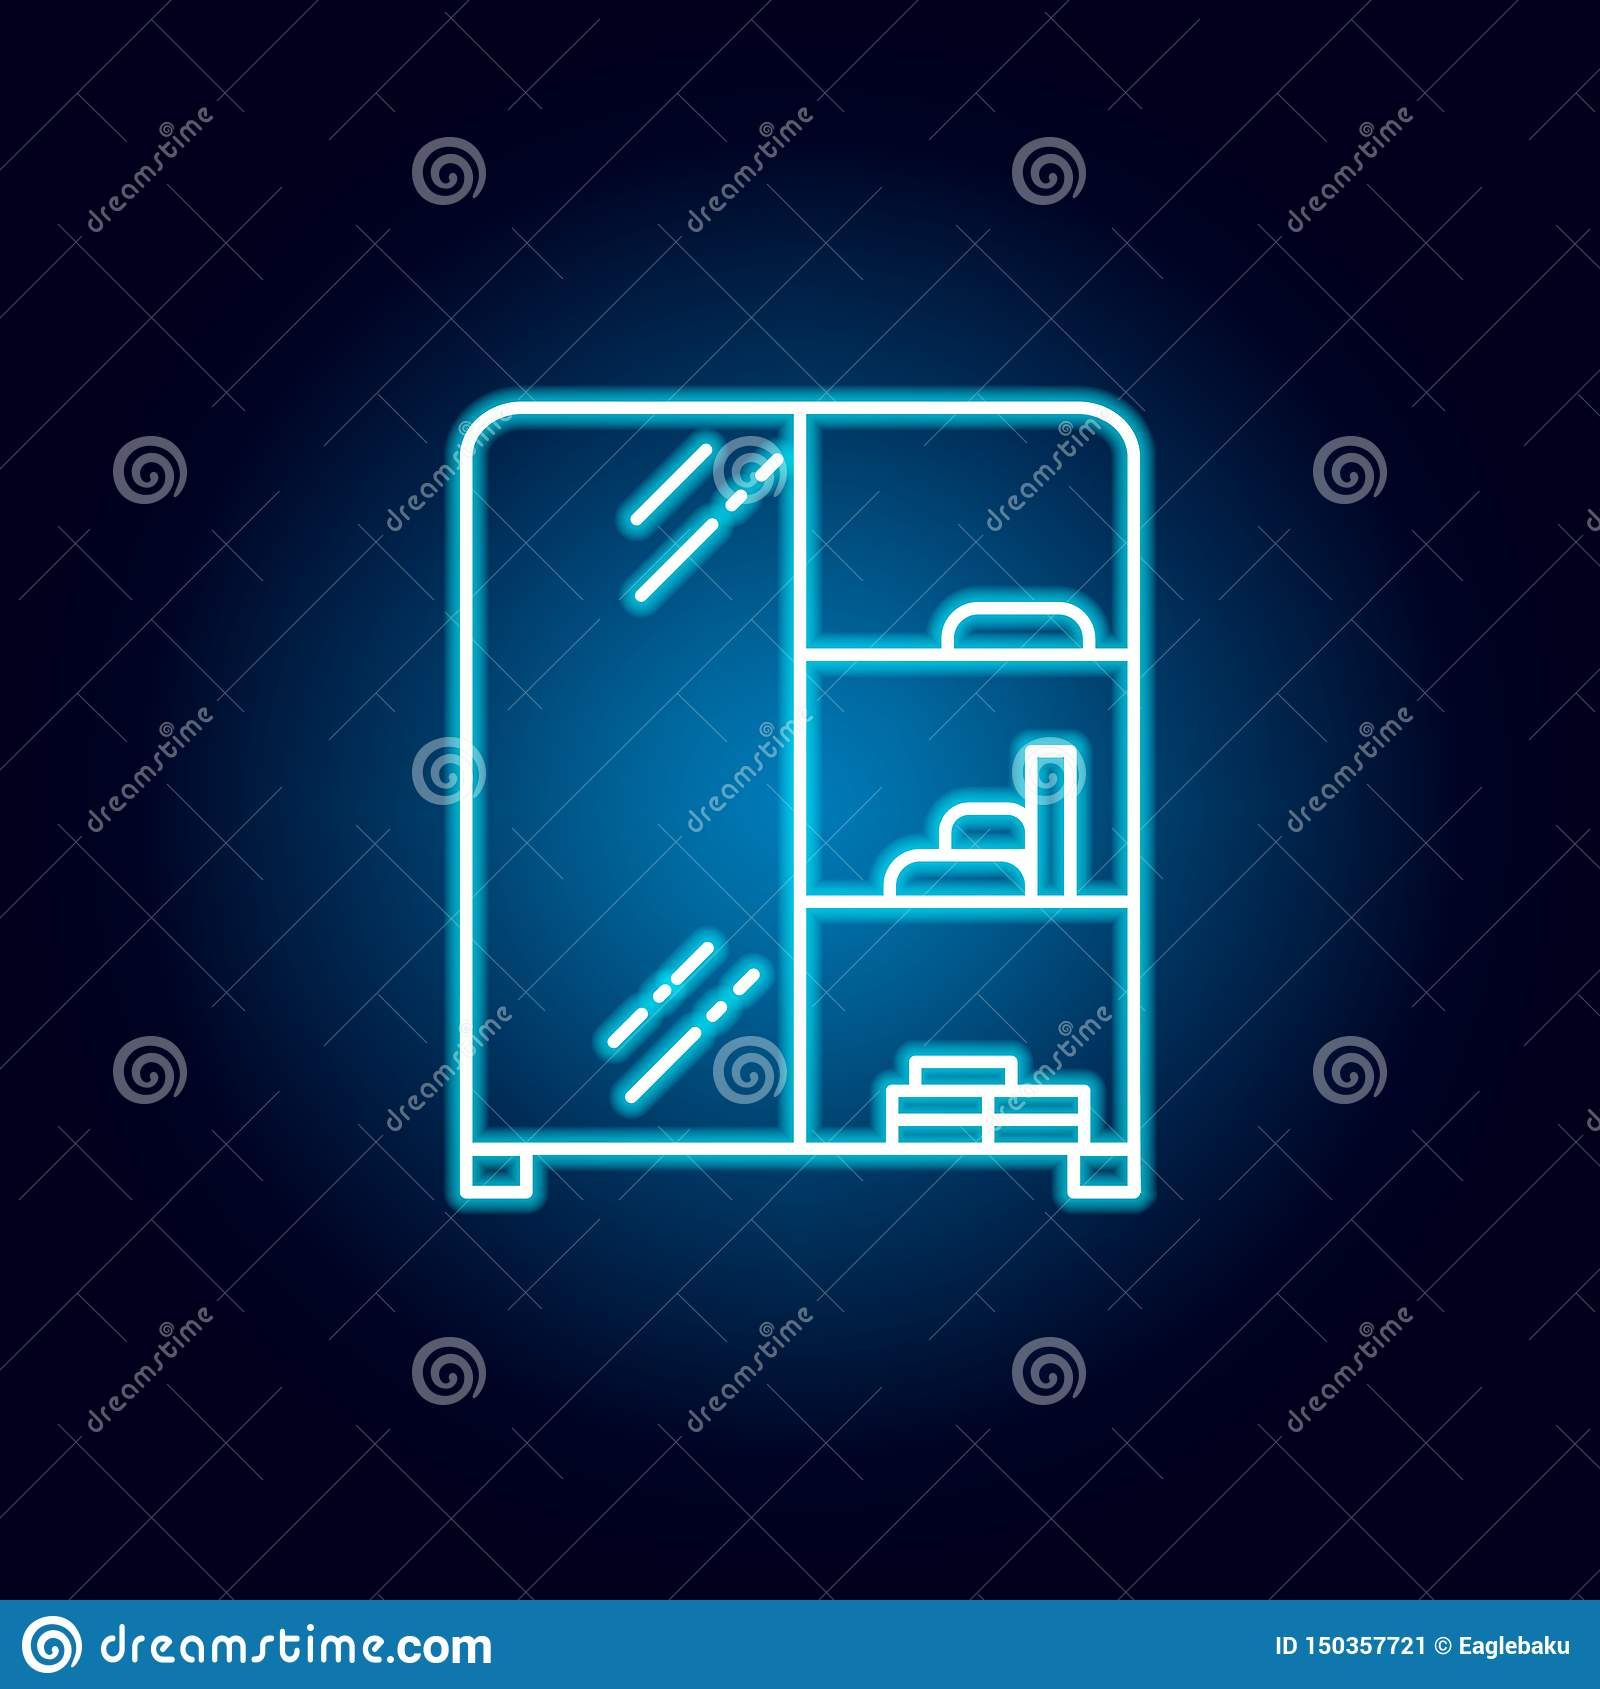 wardrobe, furniture outline icon in neon style. signs and symbols can be used for web, logo, mobile app, UI, UX